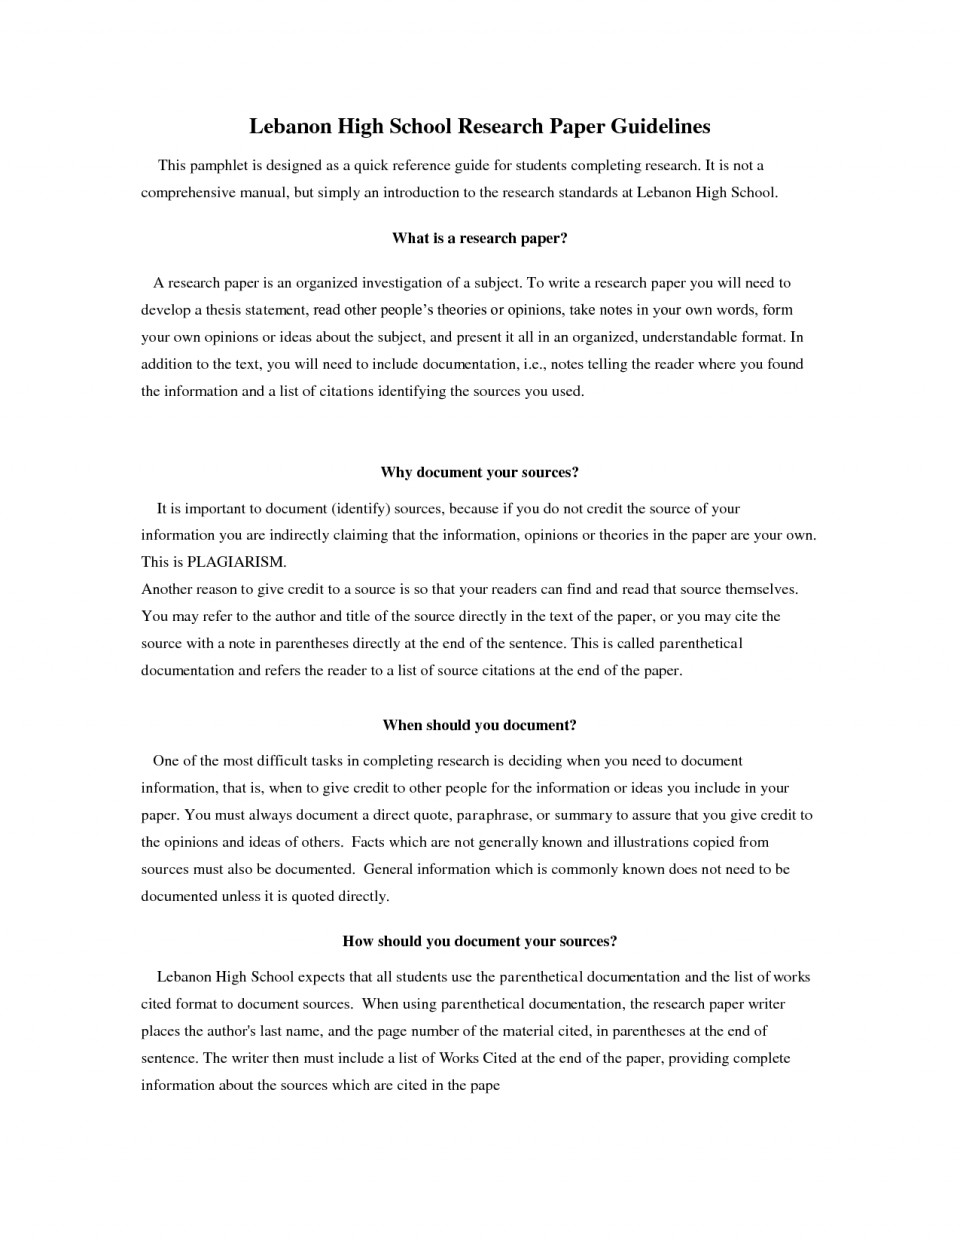 024 Research Paper Good Singular Topic Topics 2019 Ideas In Business And Finance For College Students 960